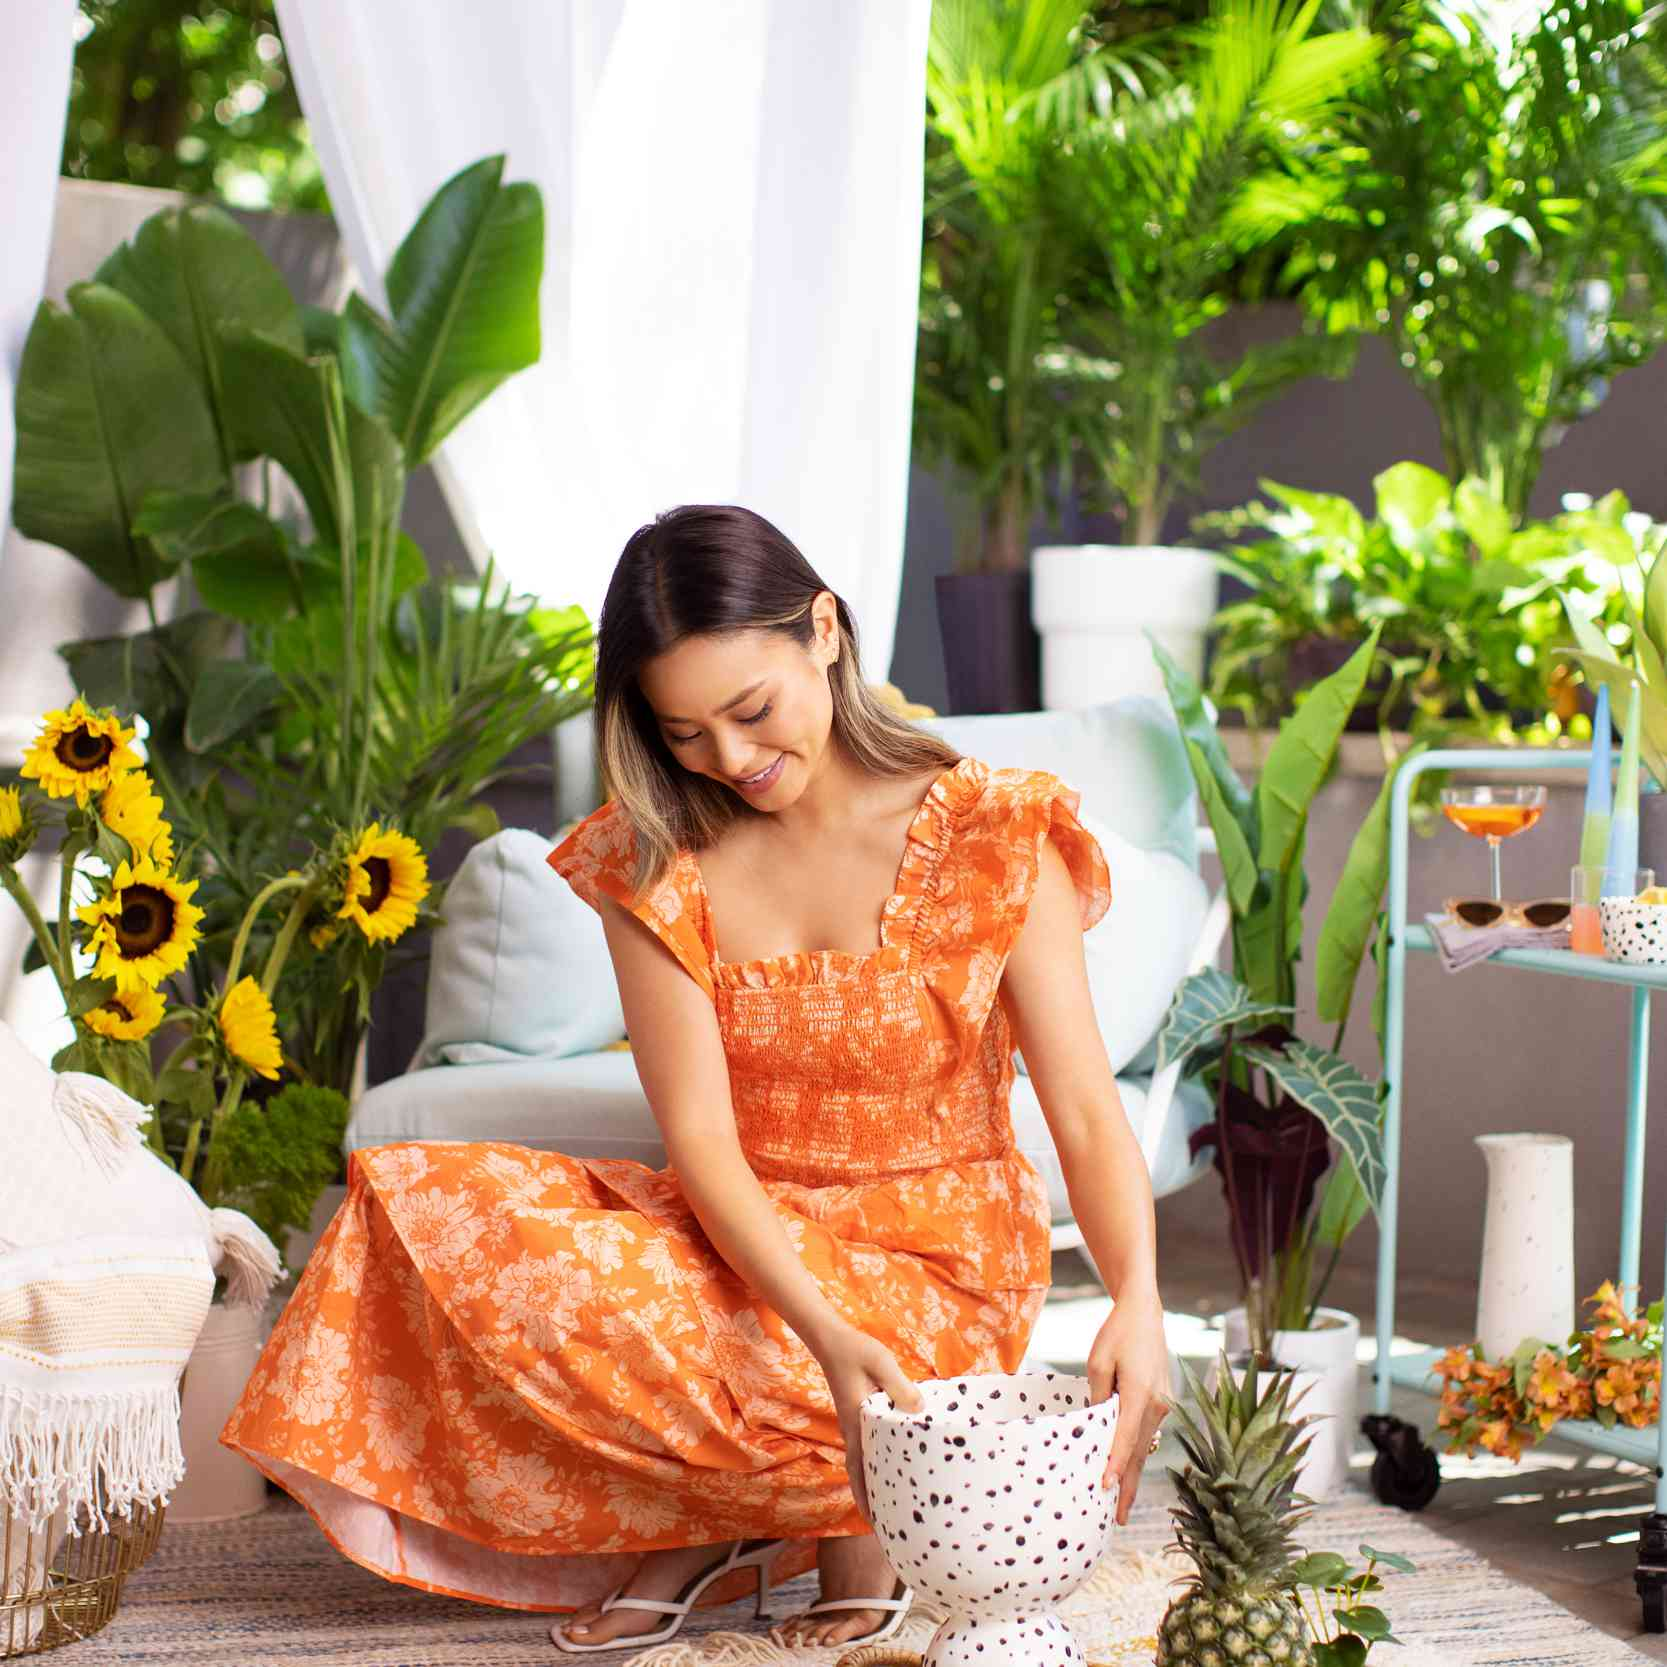 Jamie Chung arranges a tray of fruits and decor on a rug in her Brooklyn backyard